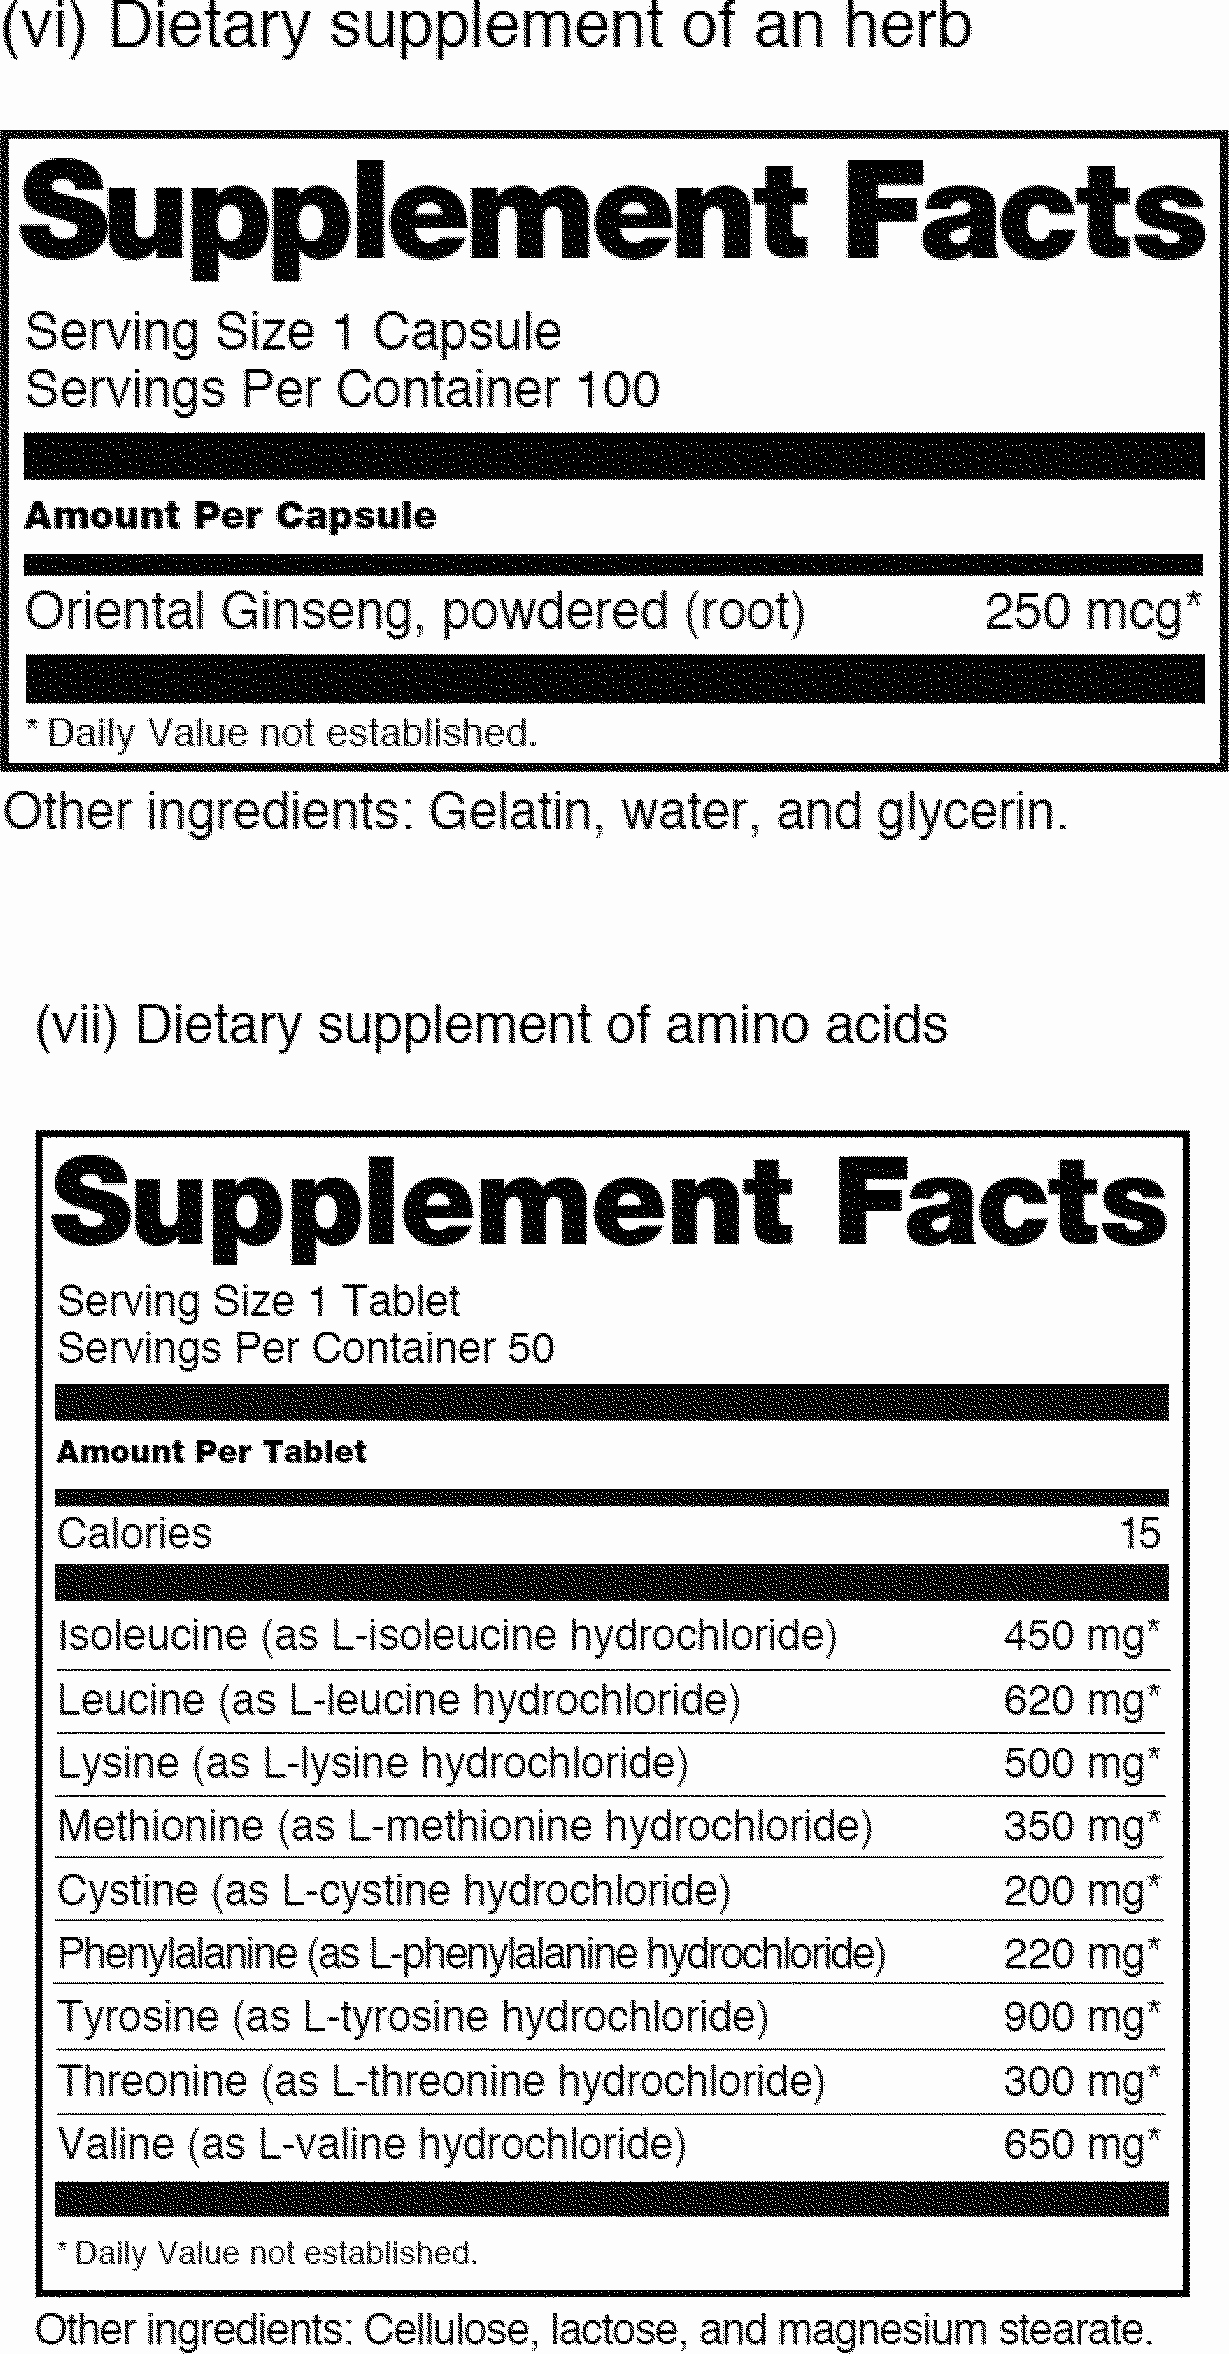 Supplement Facts Label Template Unique Nutrition Facts for Love Free Printable Awesome Collection